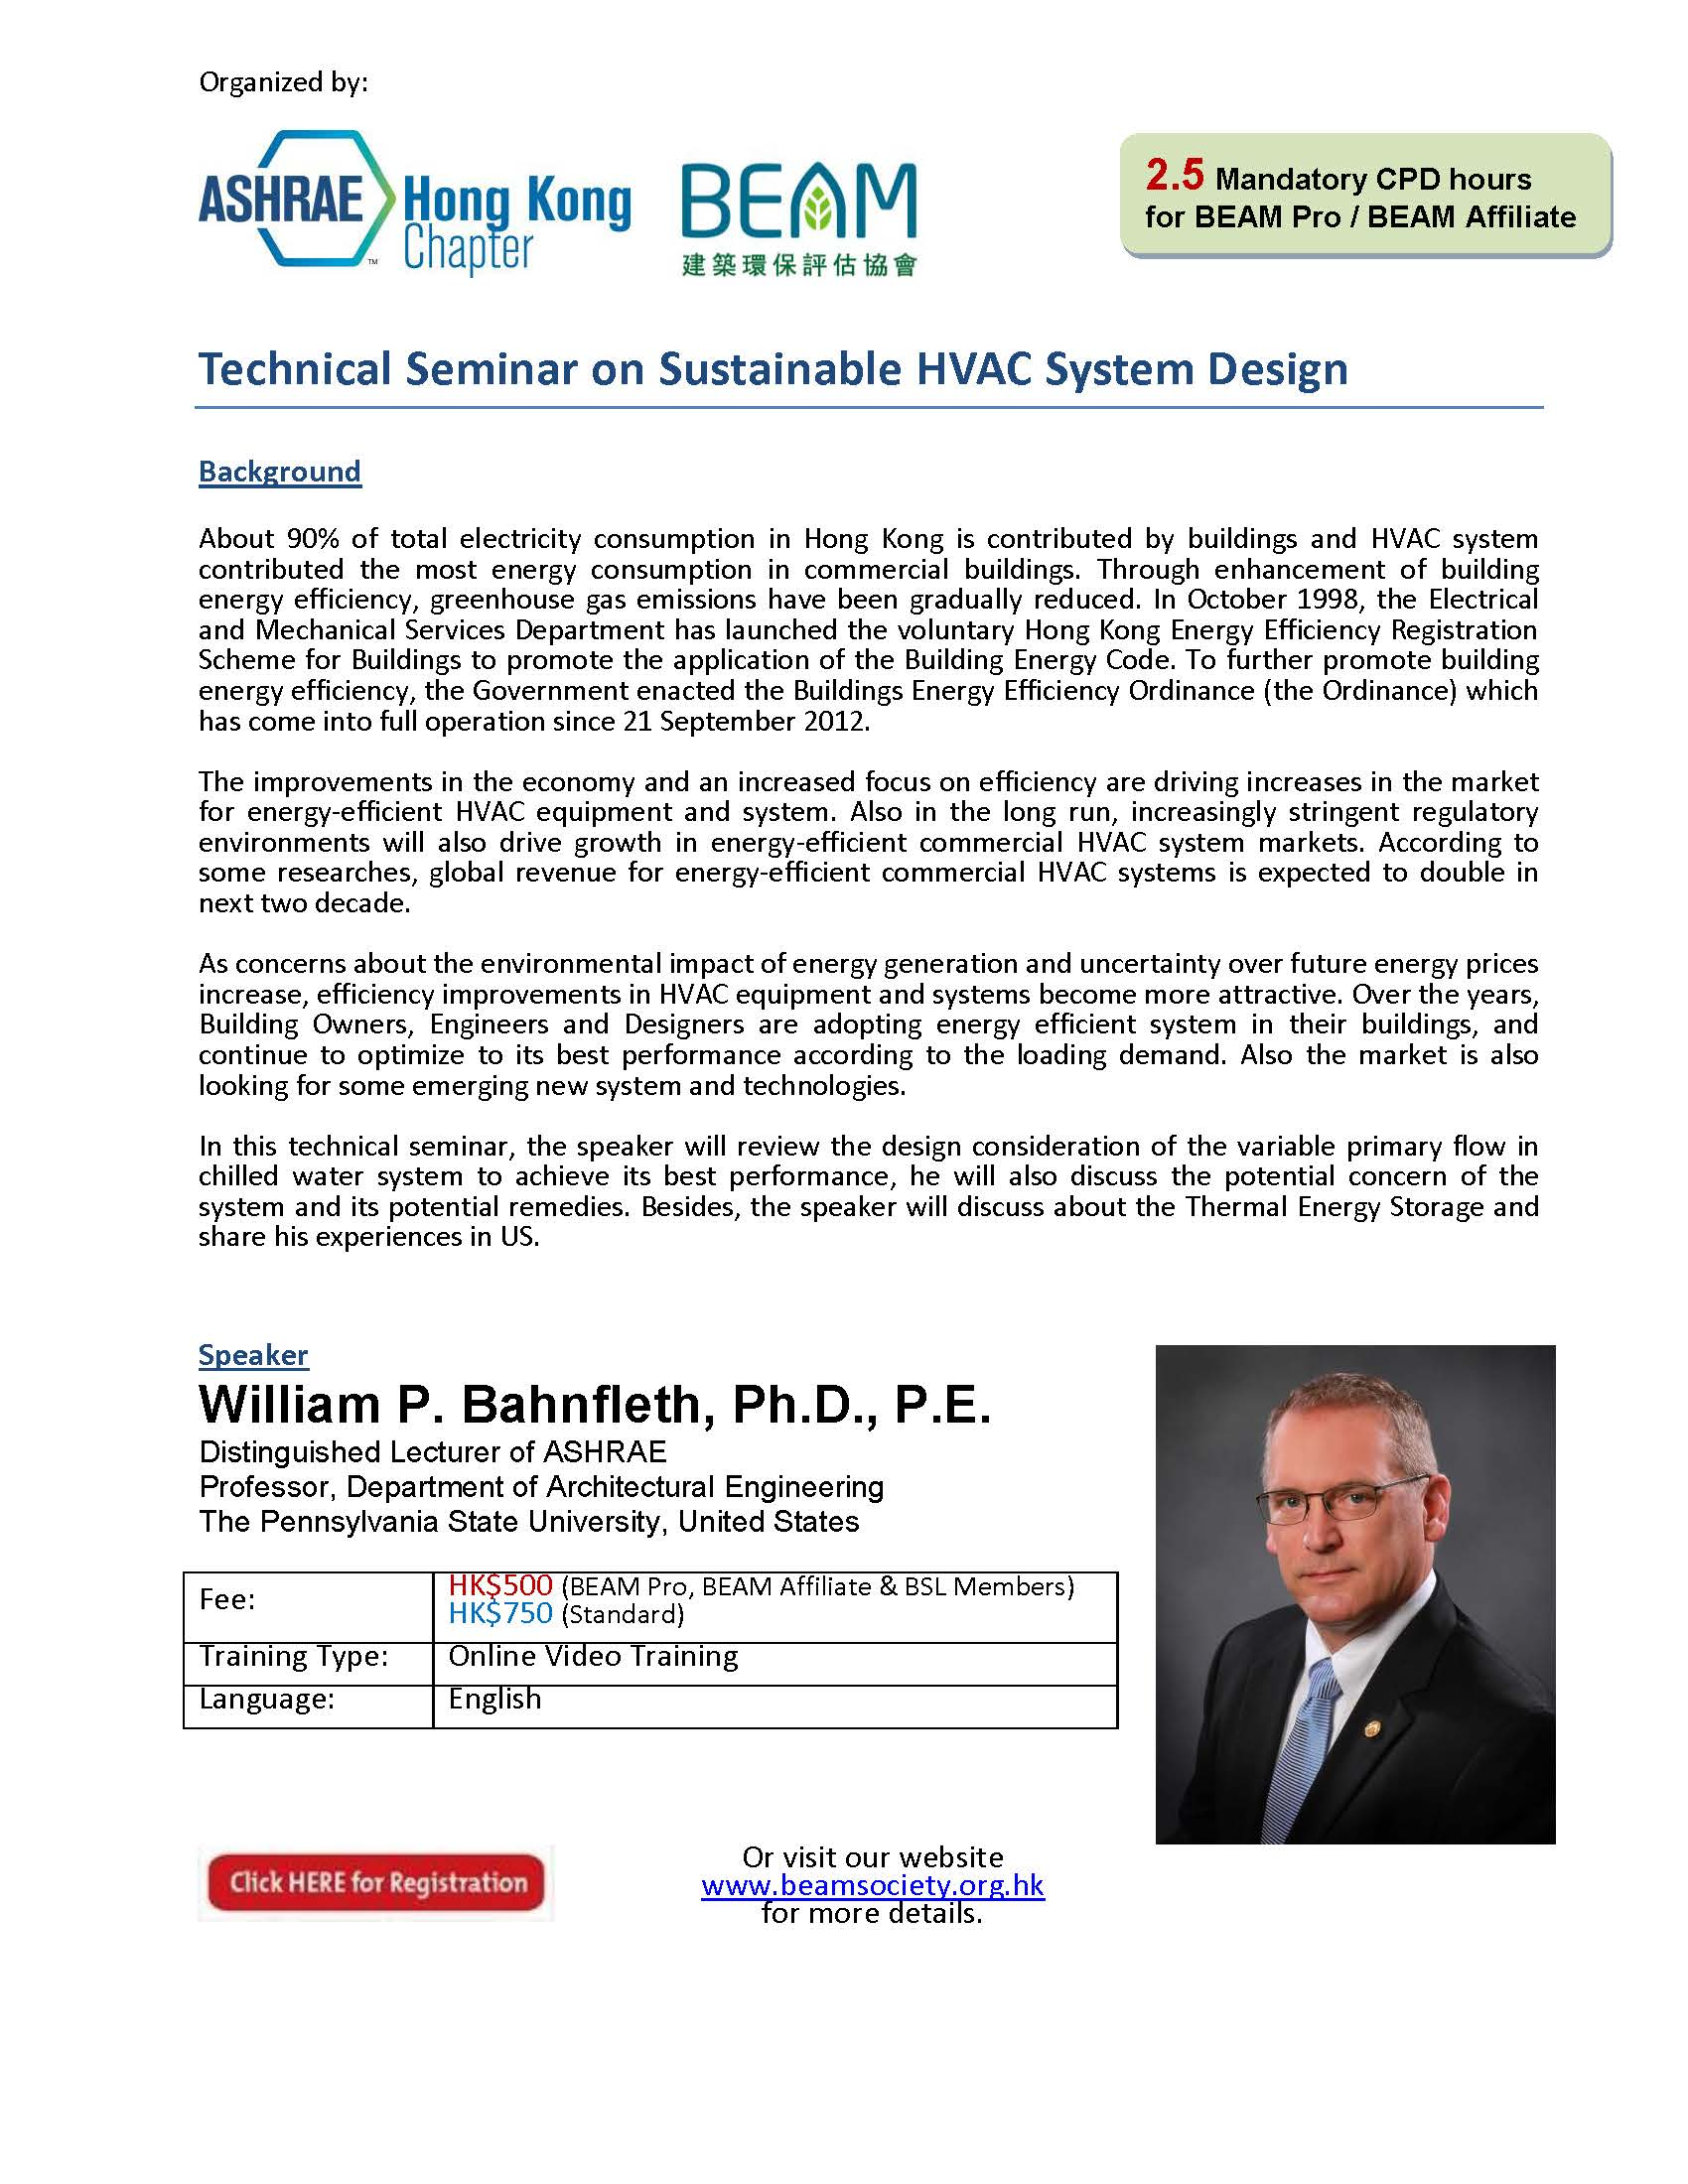 Online Mandatory CPD Training - New Course is Now Available - Technical Seminar on Sustainable HVAC System Design